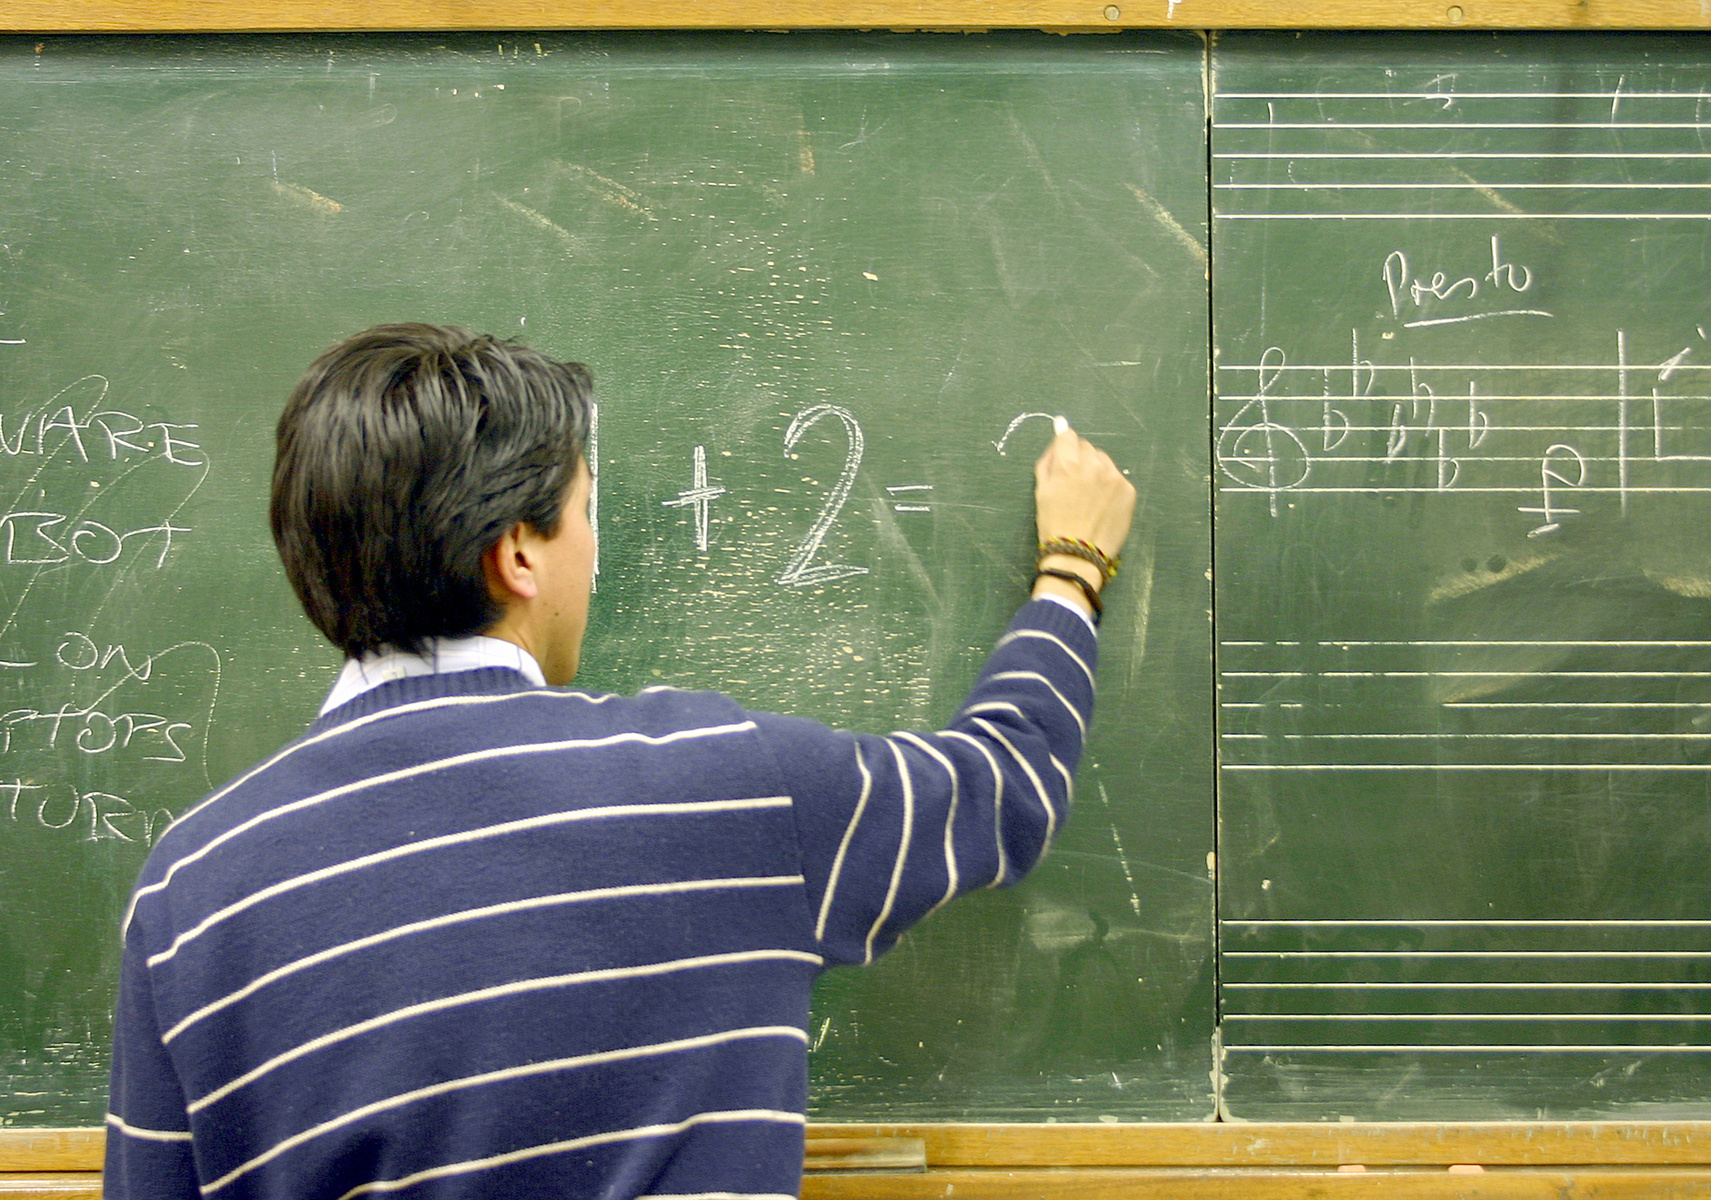 A male teacher writes a math equation on a chalkboard